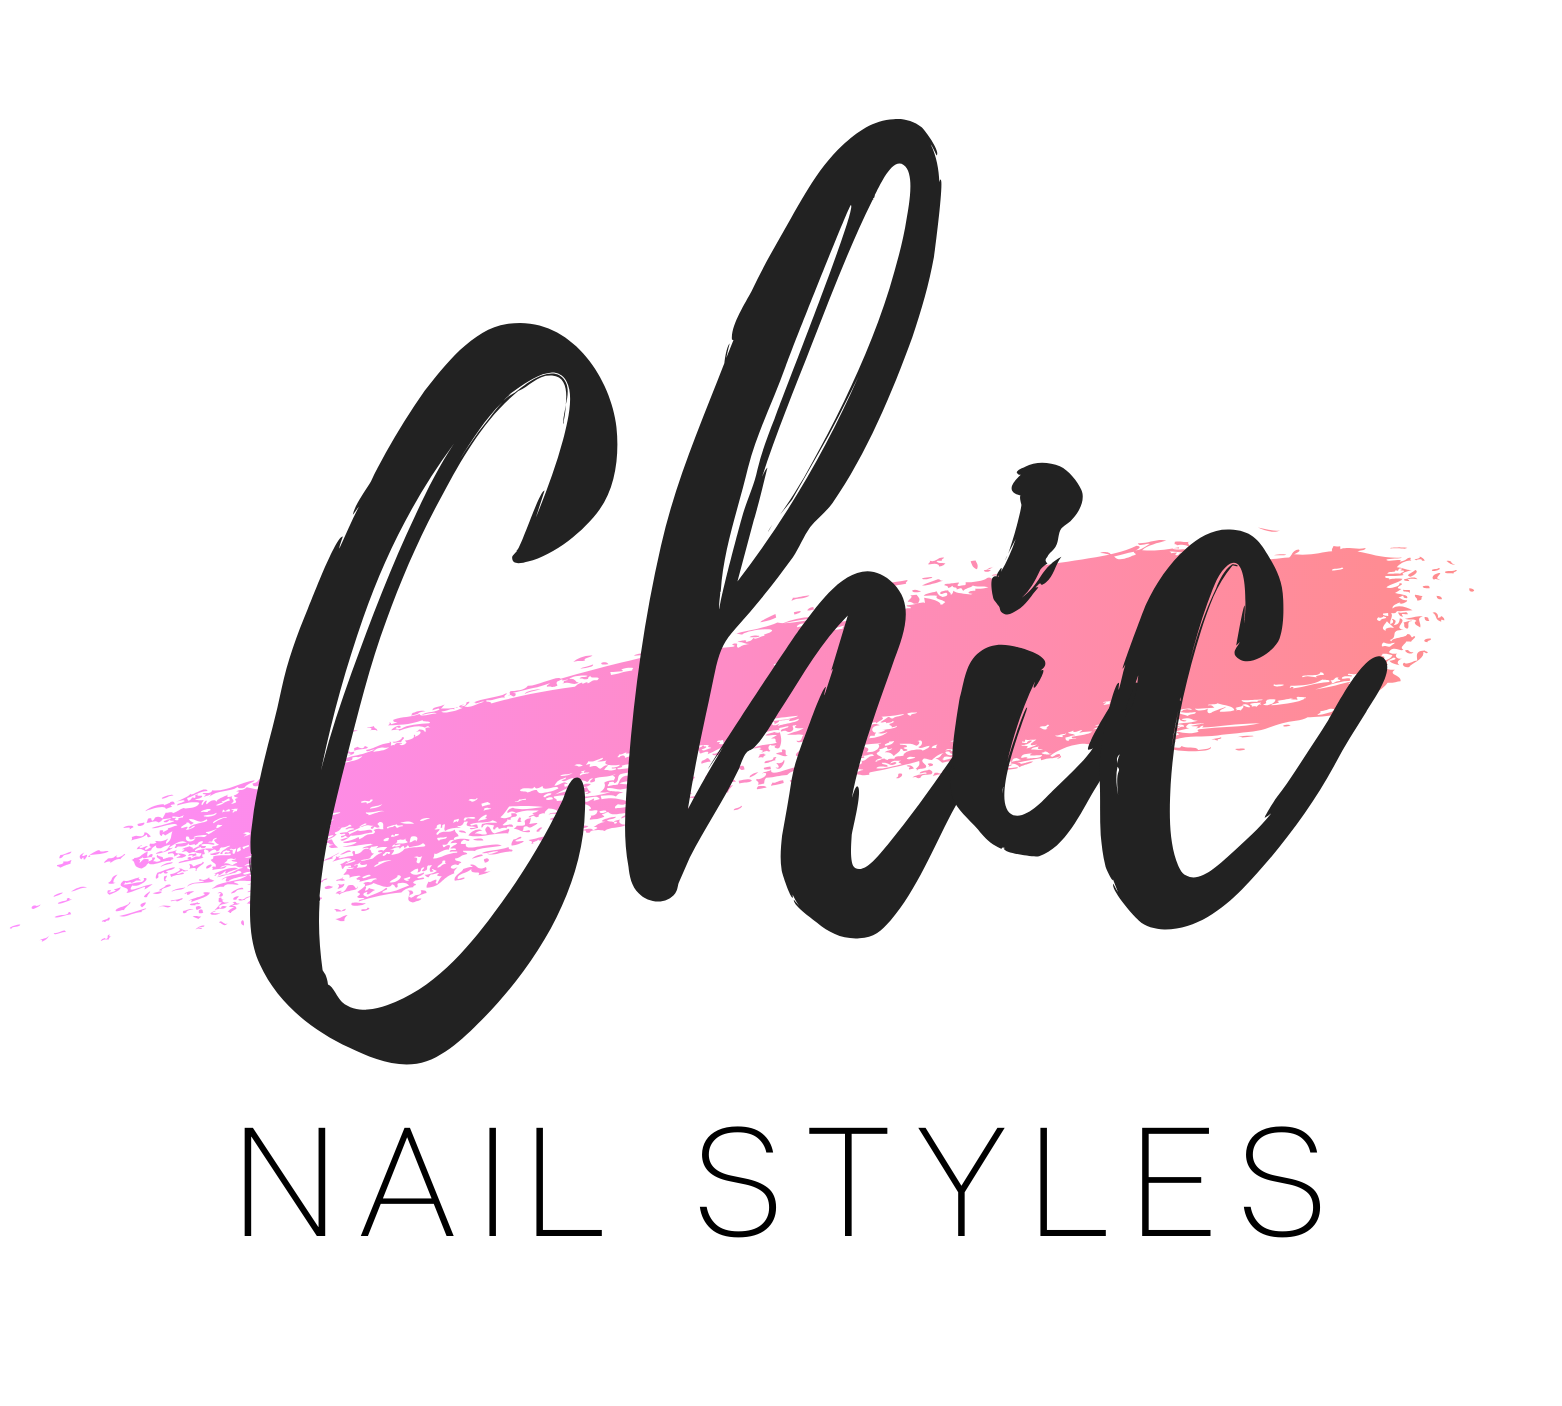 chic nail styles website